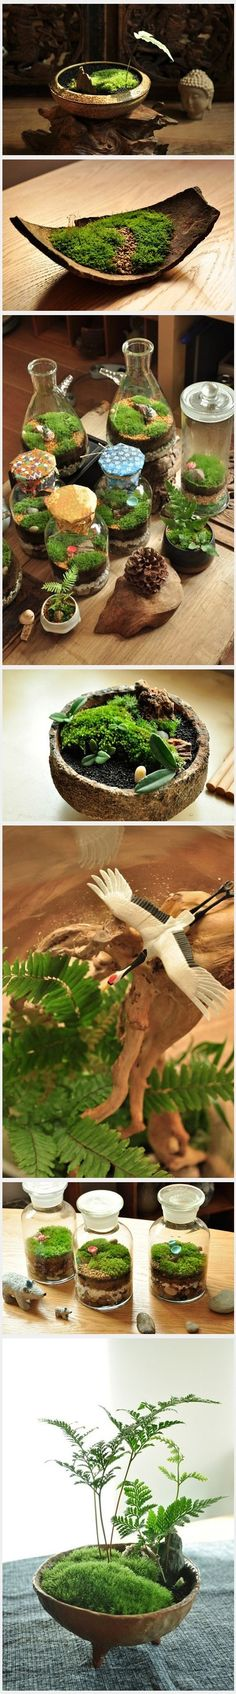 Love these #moss #garden ideas! RT to share the #mossmadness